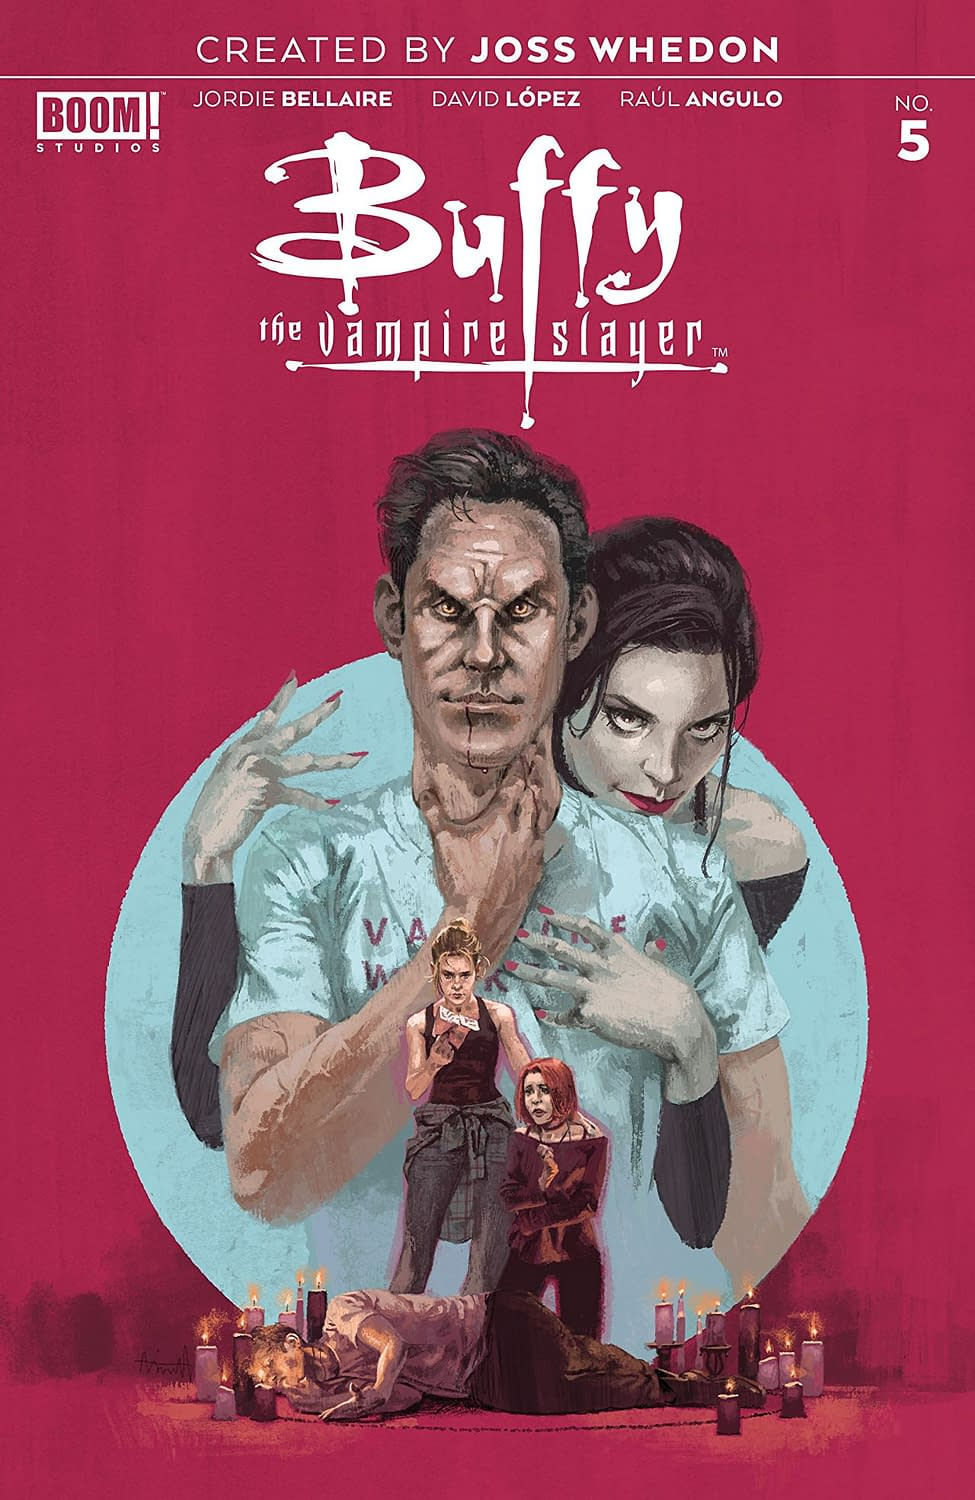 'Buffy the Vampire Slayer #5' Gets to the Point of Xander's Problems